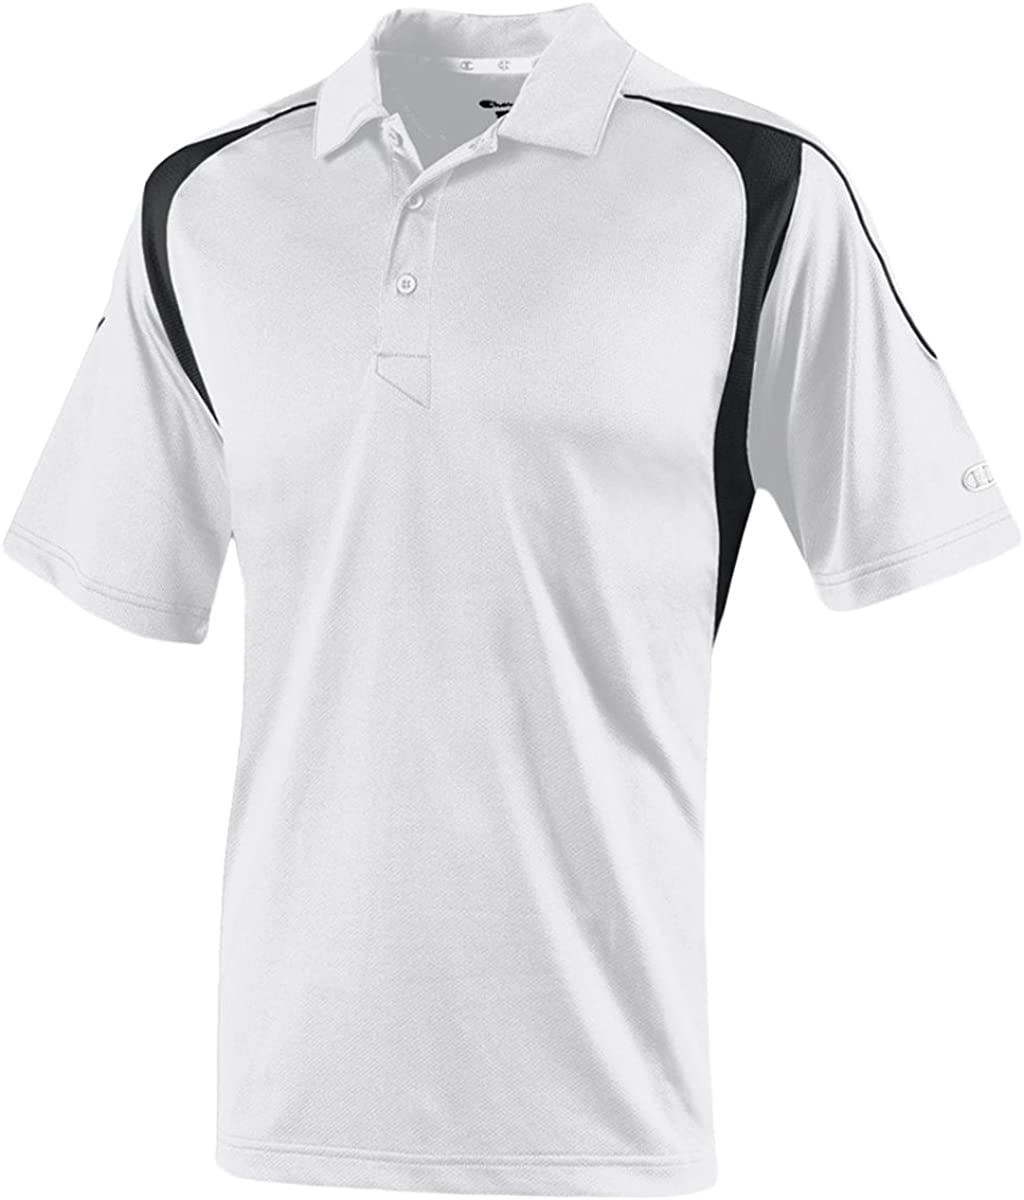 Champion Mens Athletic H316 Double Dry Elevation Polo